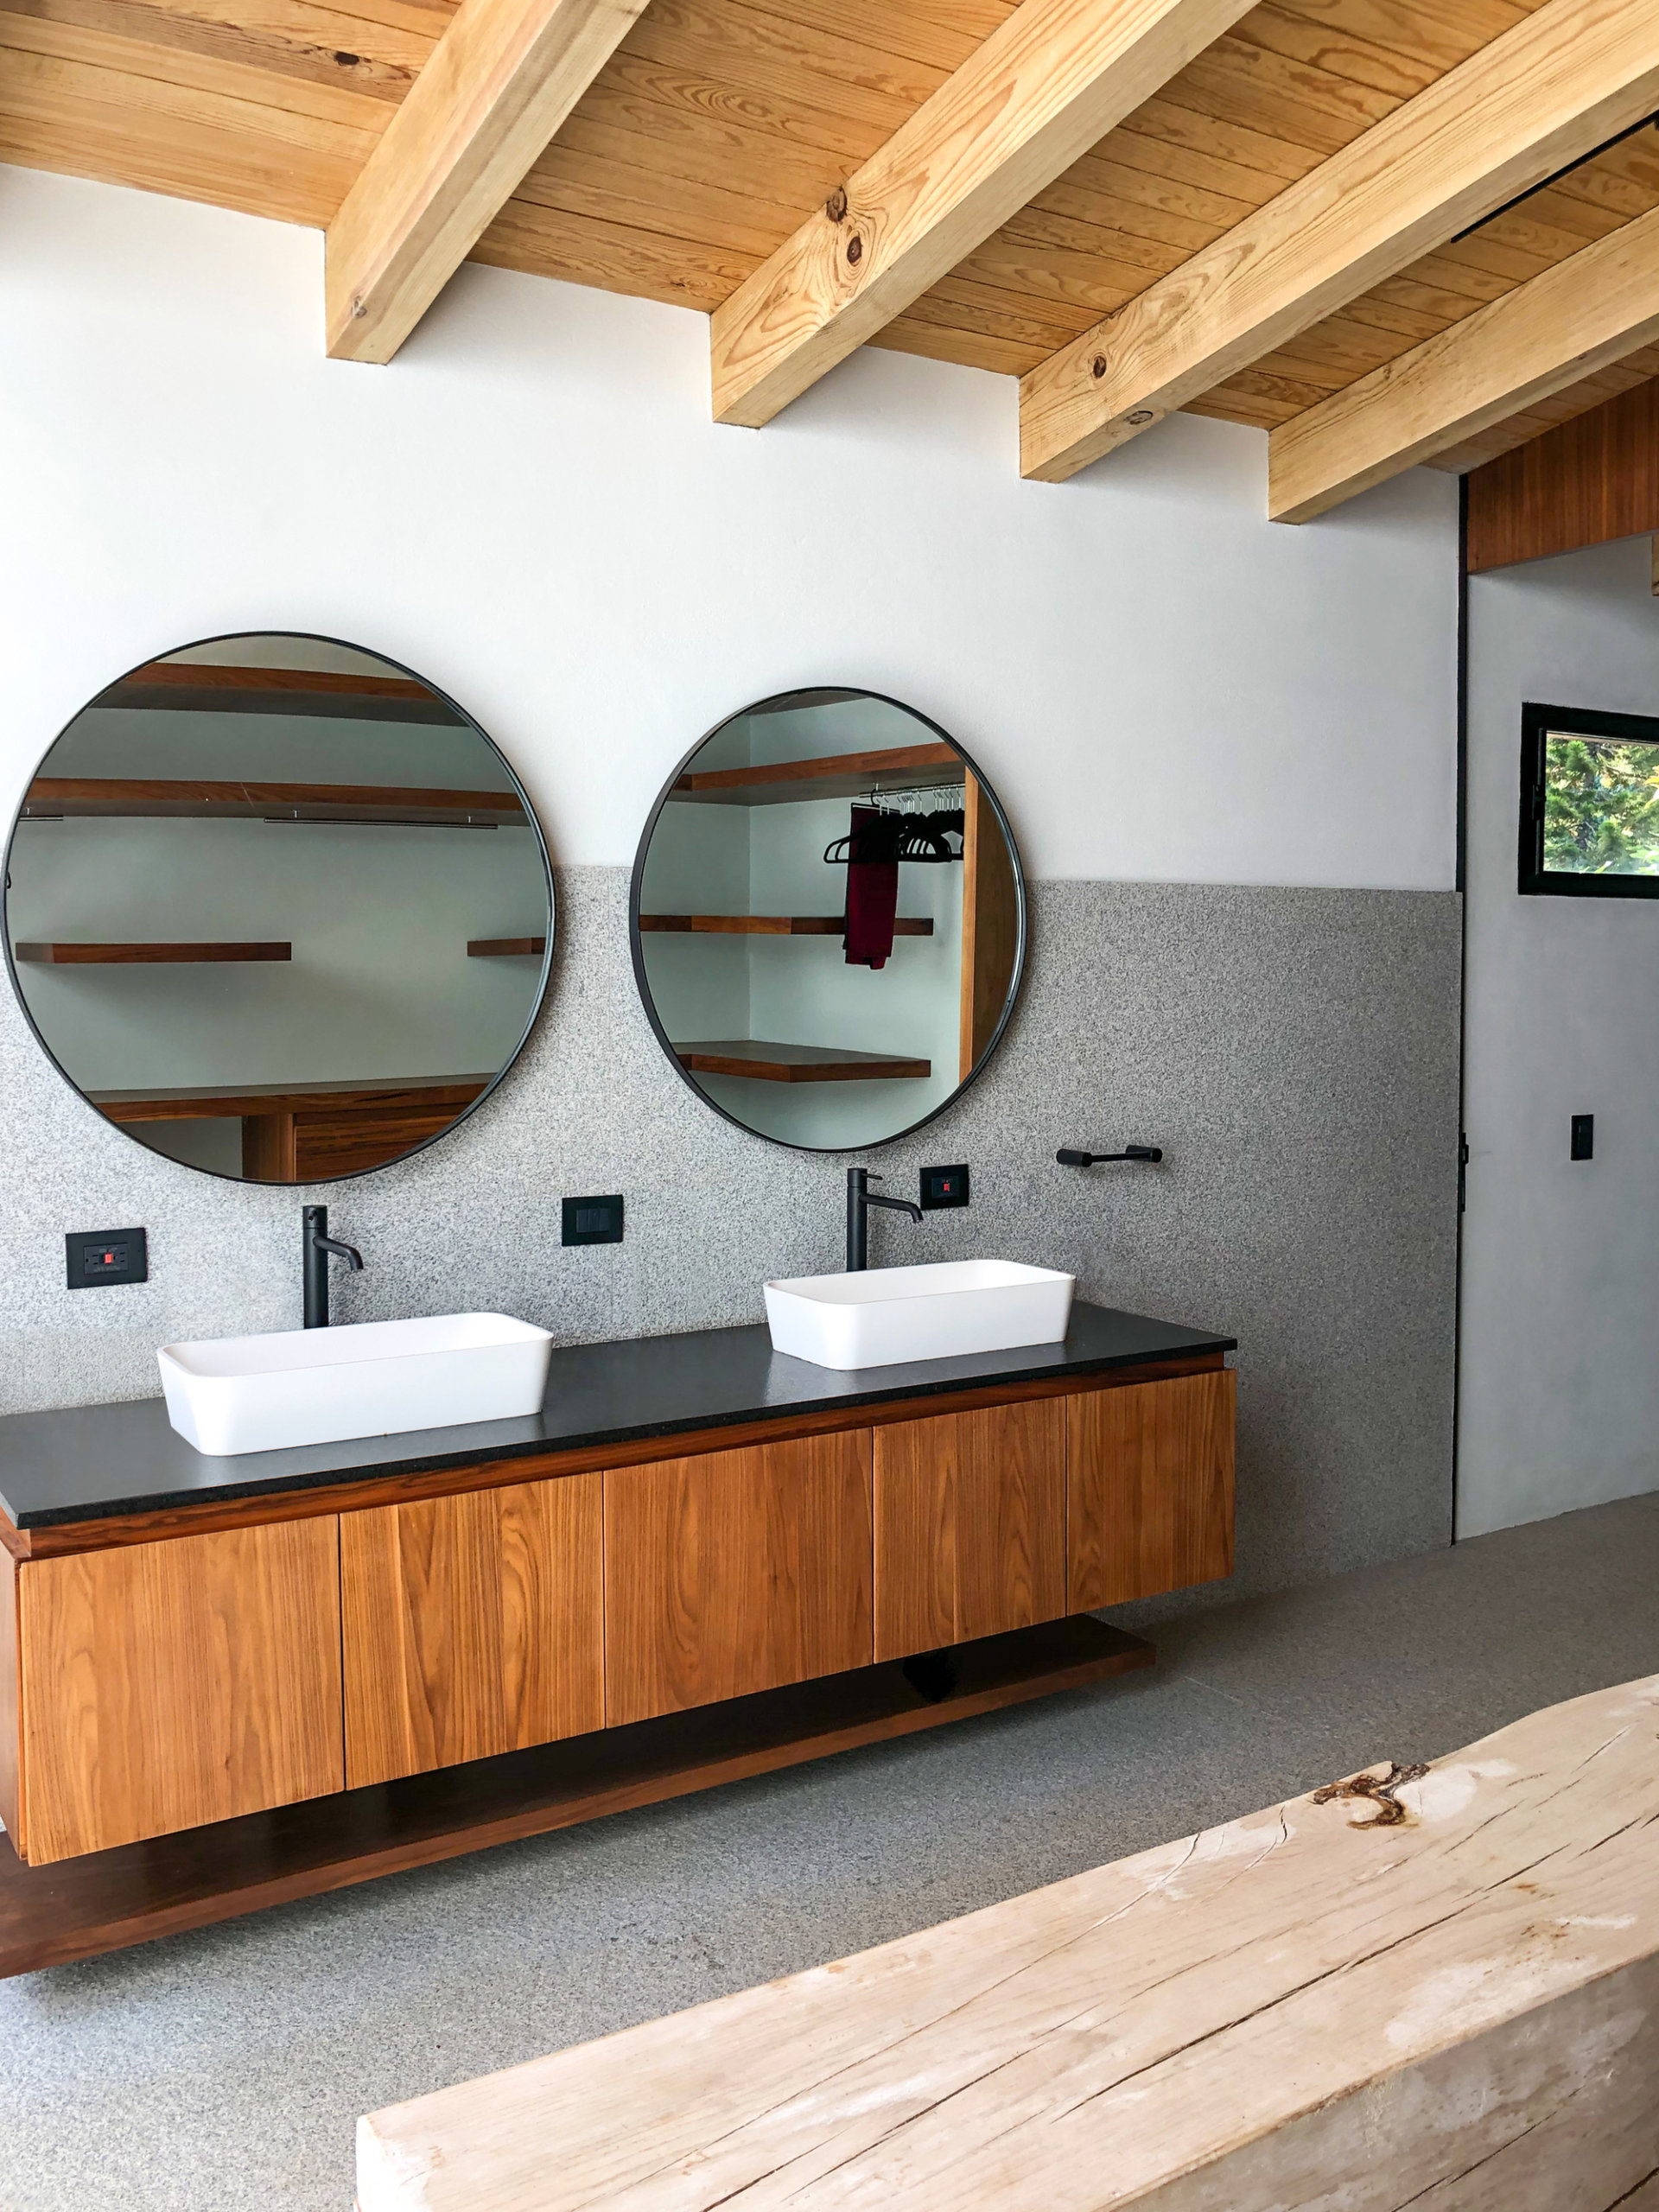 Contemporary bathroom of Eco-friendly Mexican Home with woden ceiling beams and concrete floor